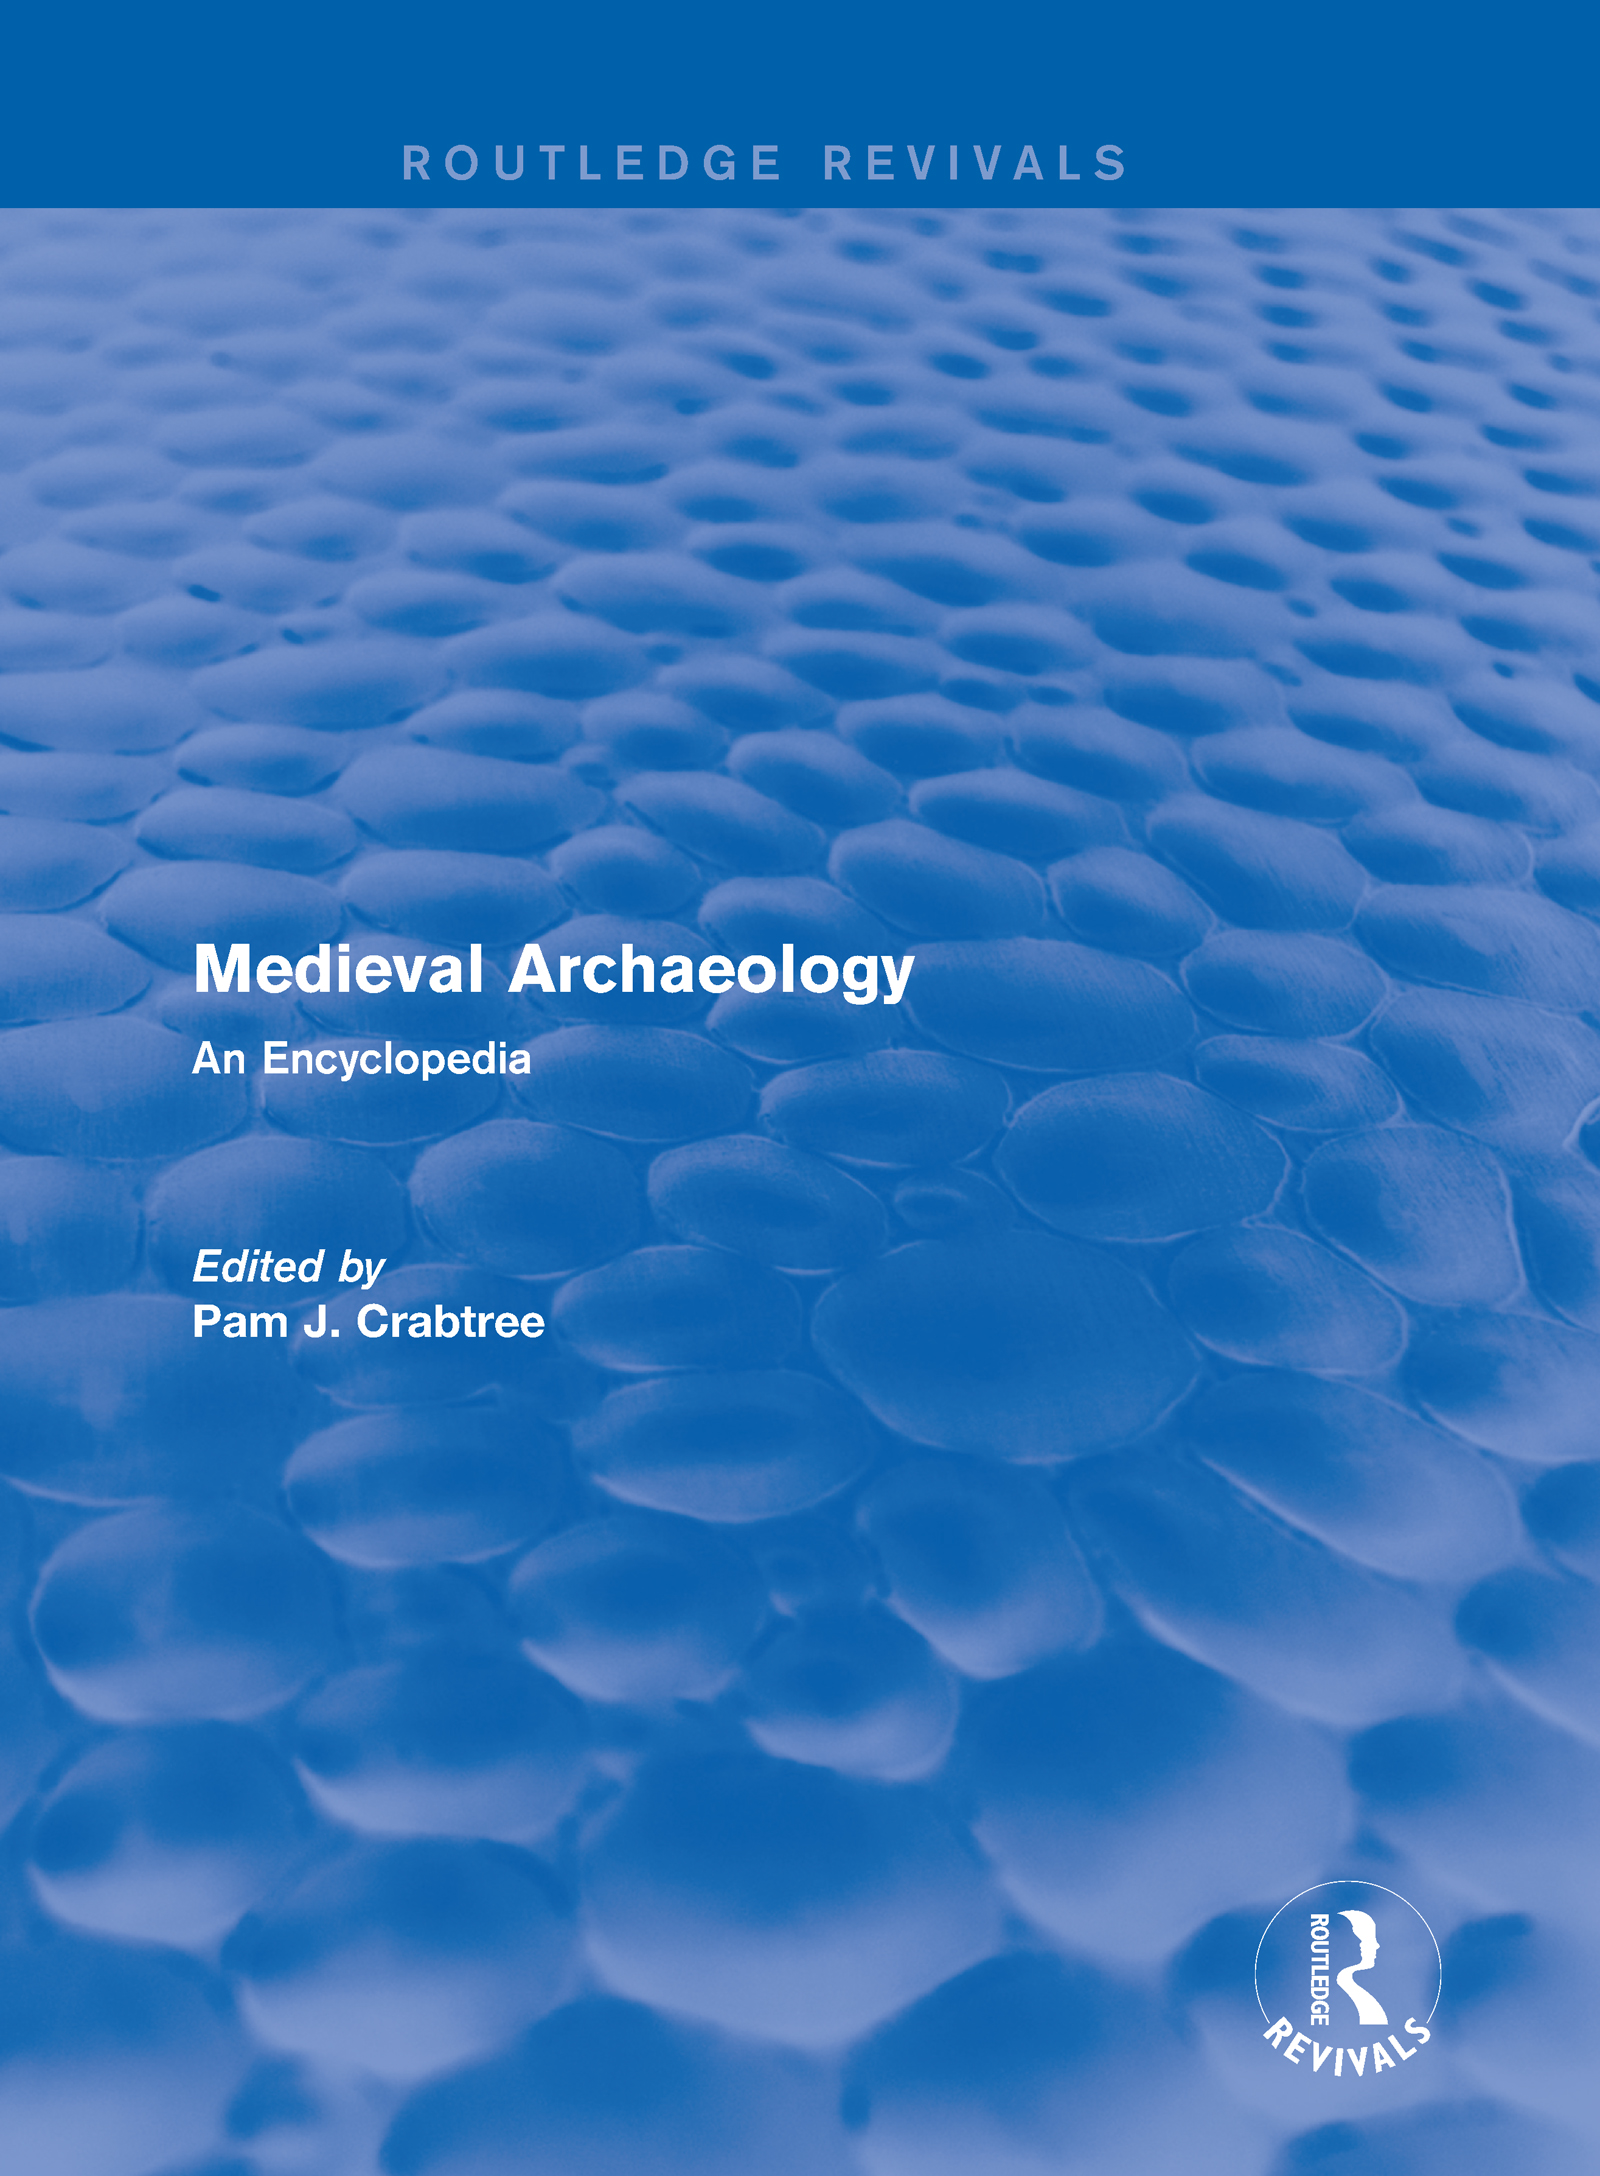 Routledge Revivals: Medieval Archaeology (2001): An Encyclopedia book cover